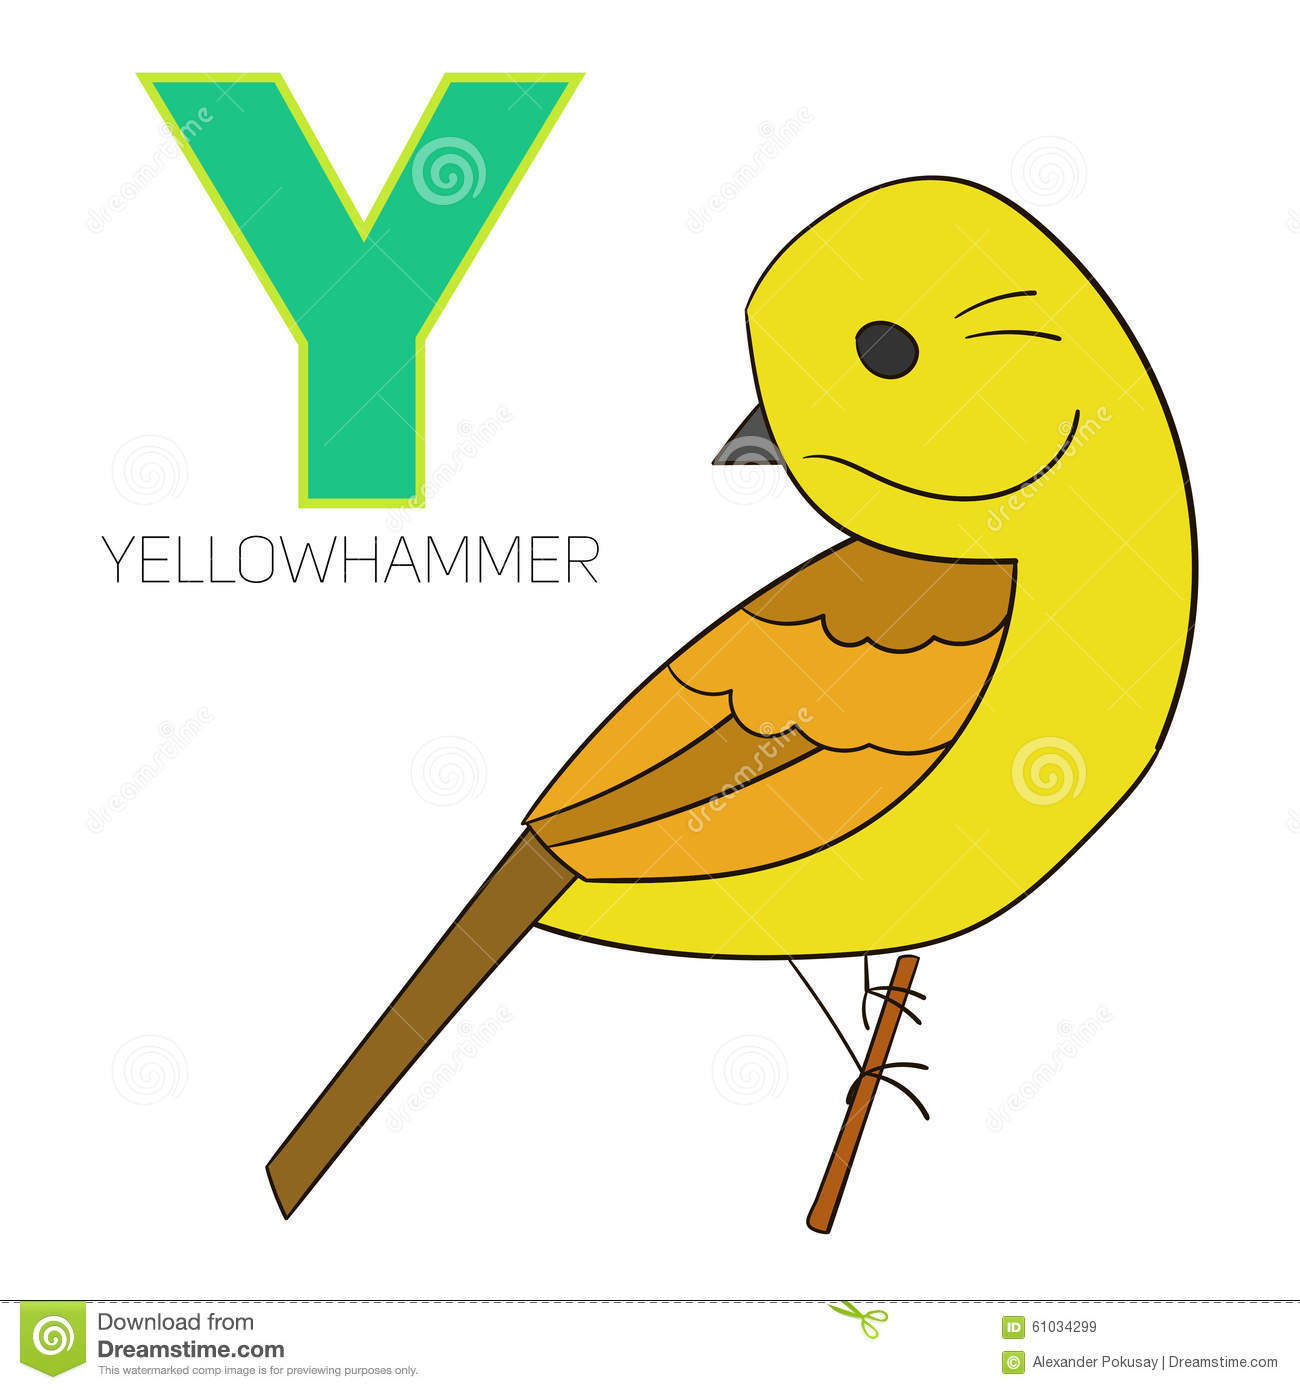 Yellowhammer clipart #16